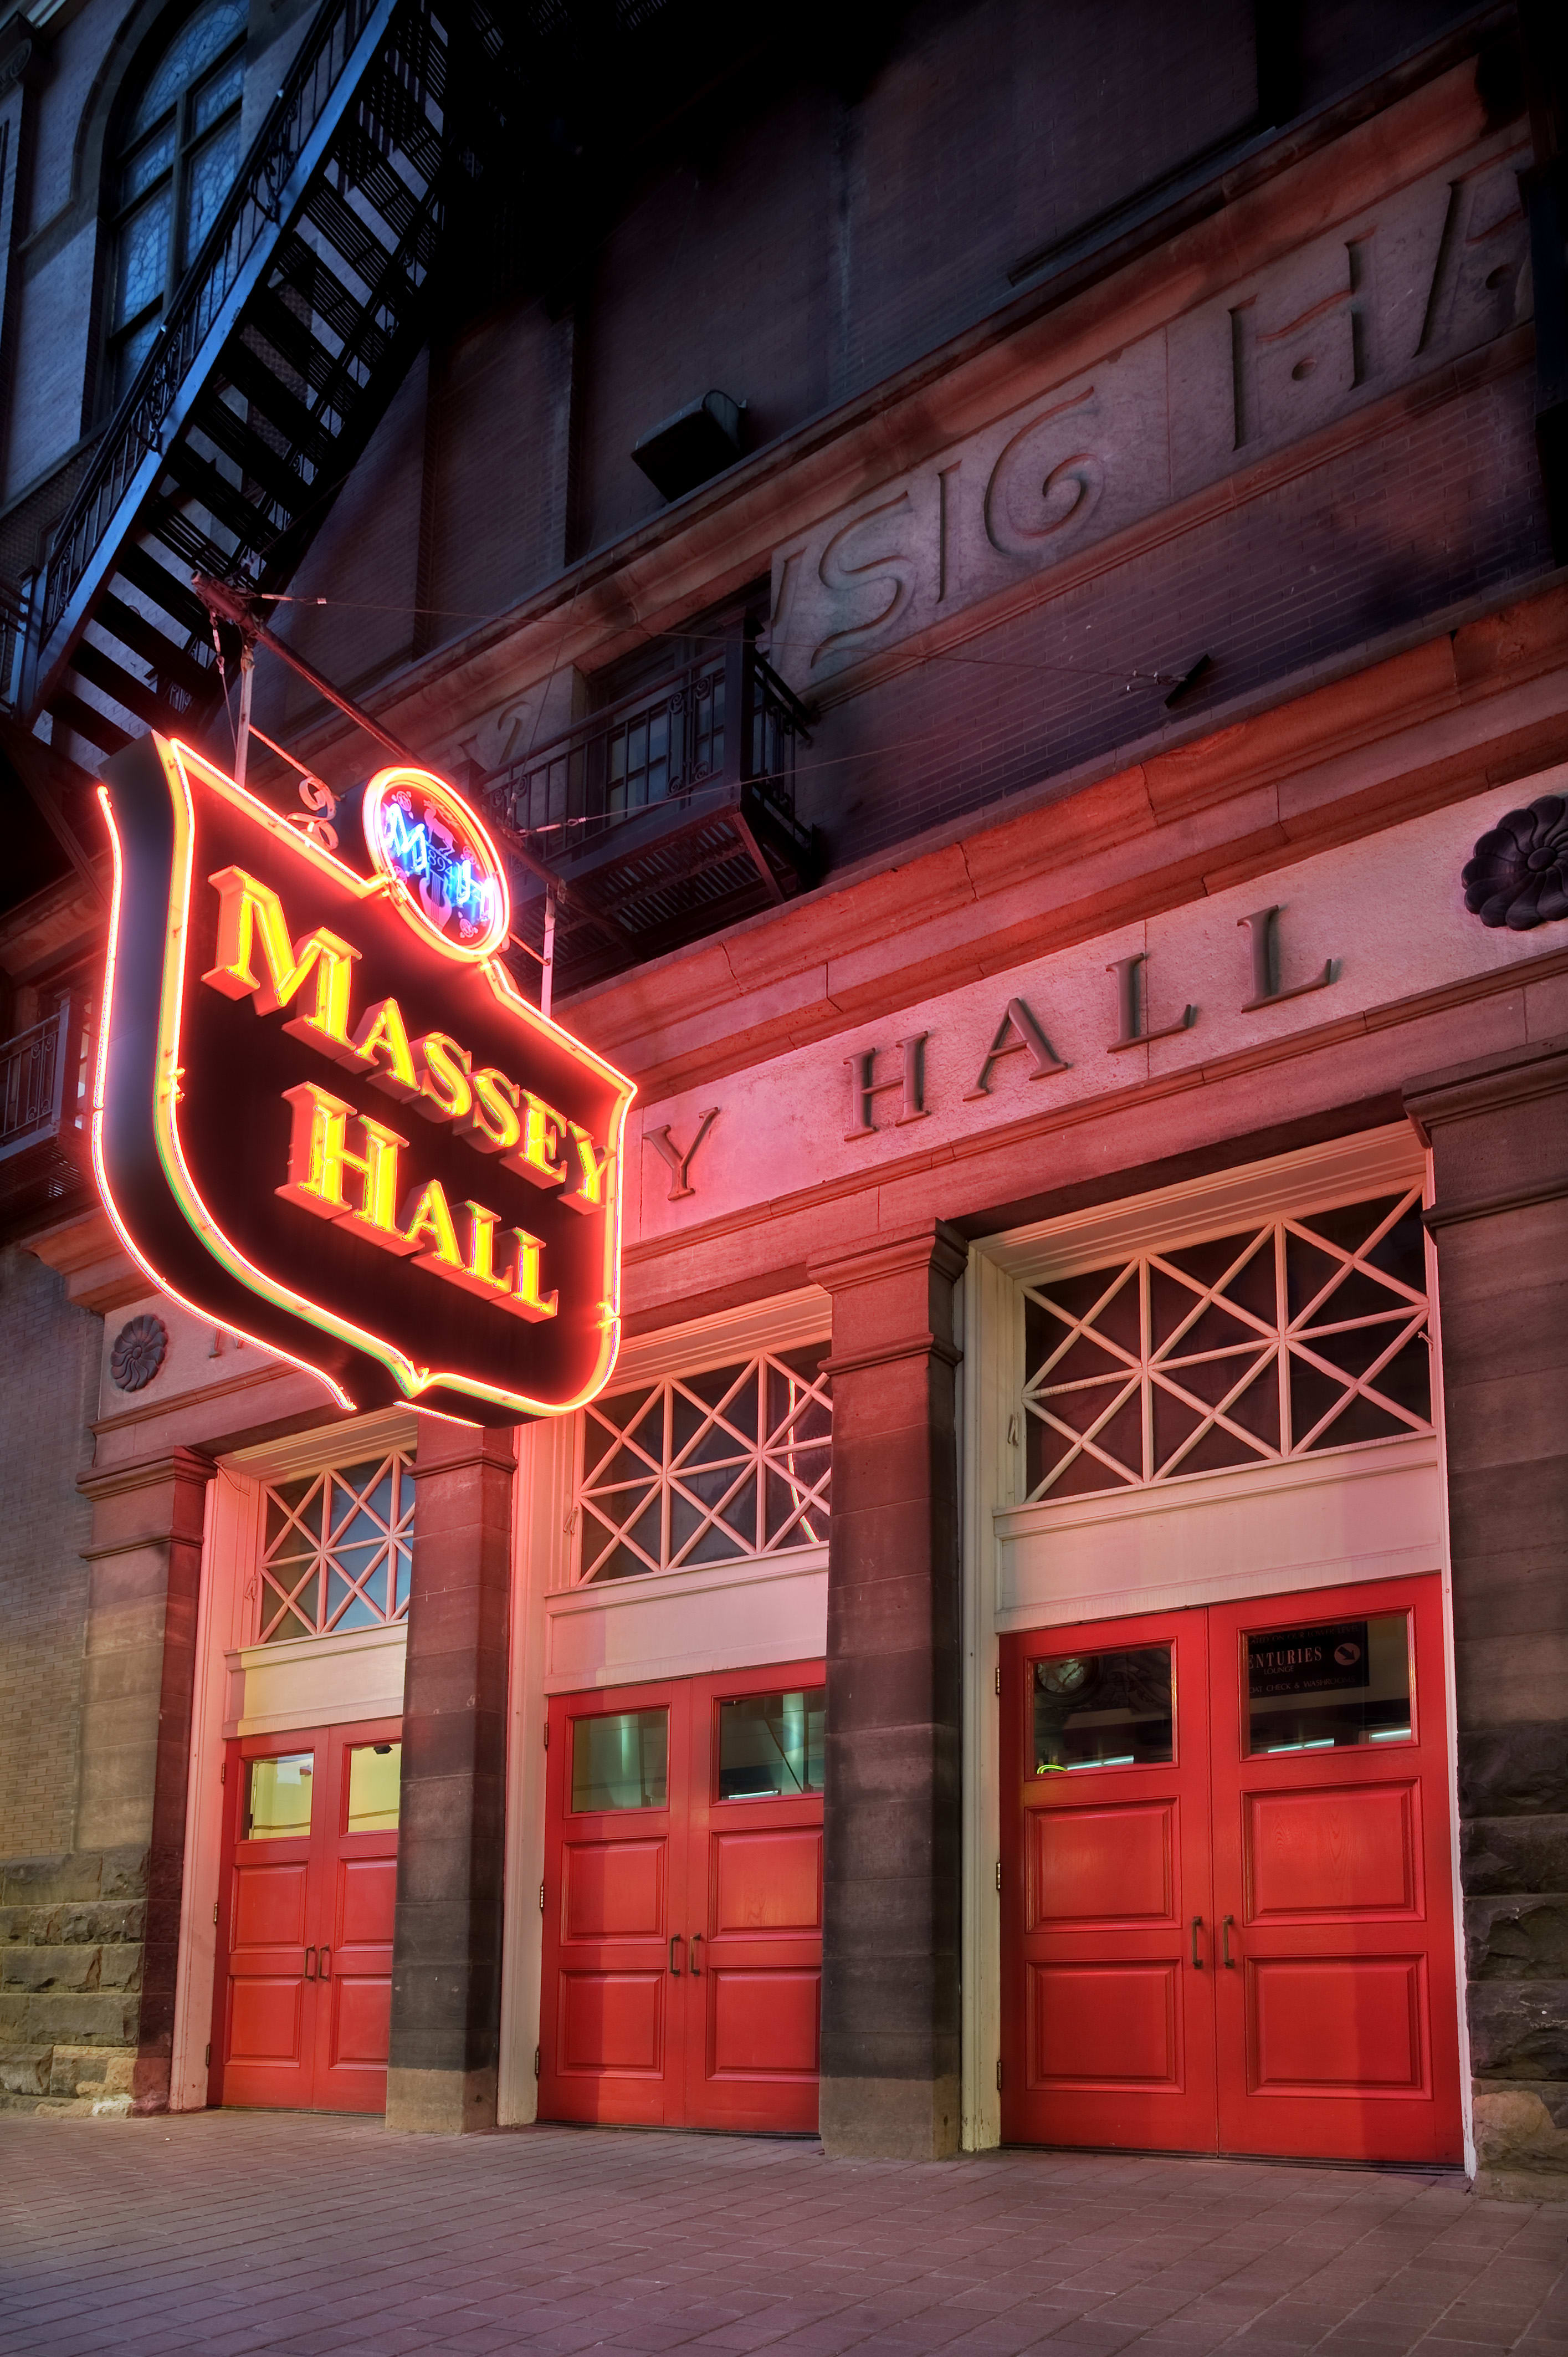 The famous facade of Massey Hall, including its exterior fire escapes, on Shuter Street